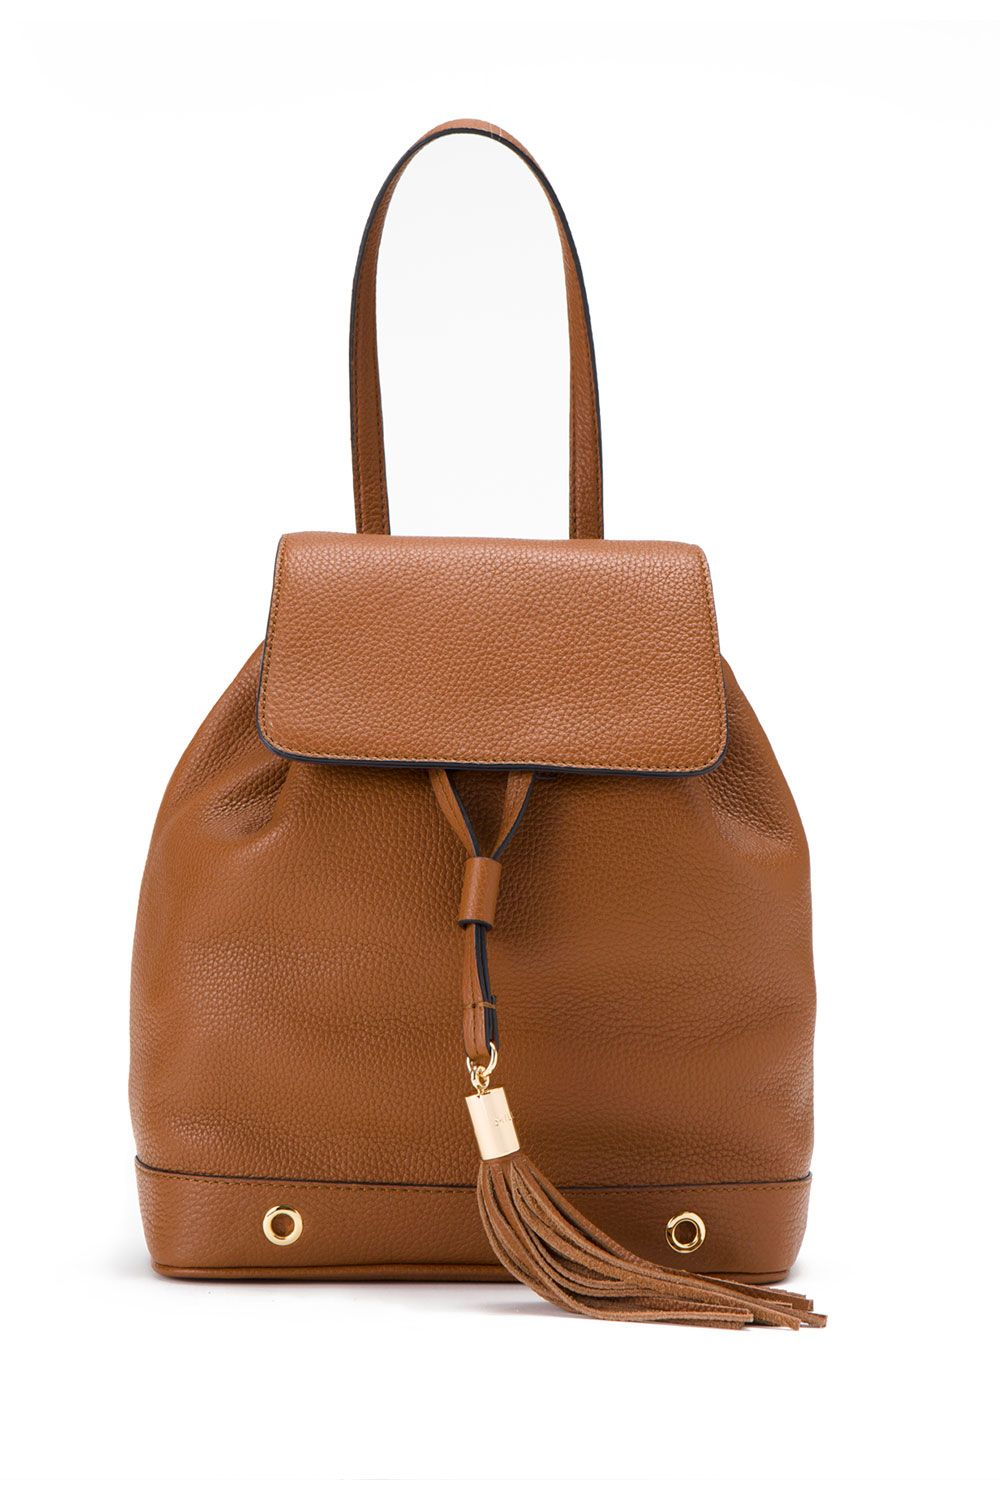 32 Leather Backpacks for College Students - Best Leather Backpacks ...